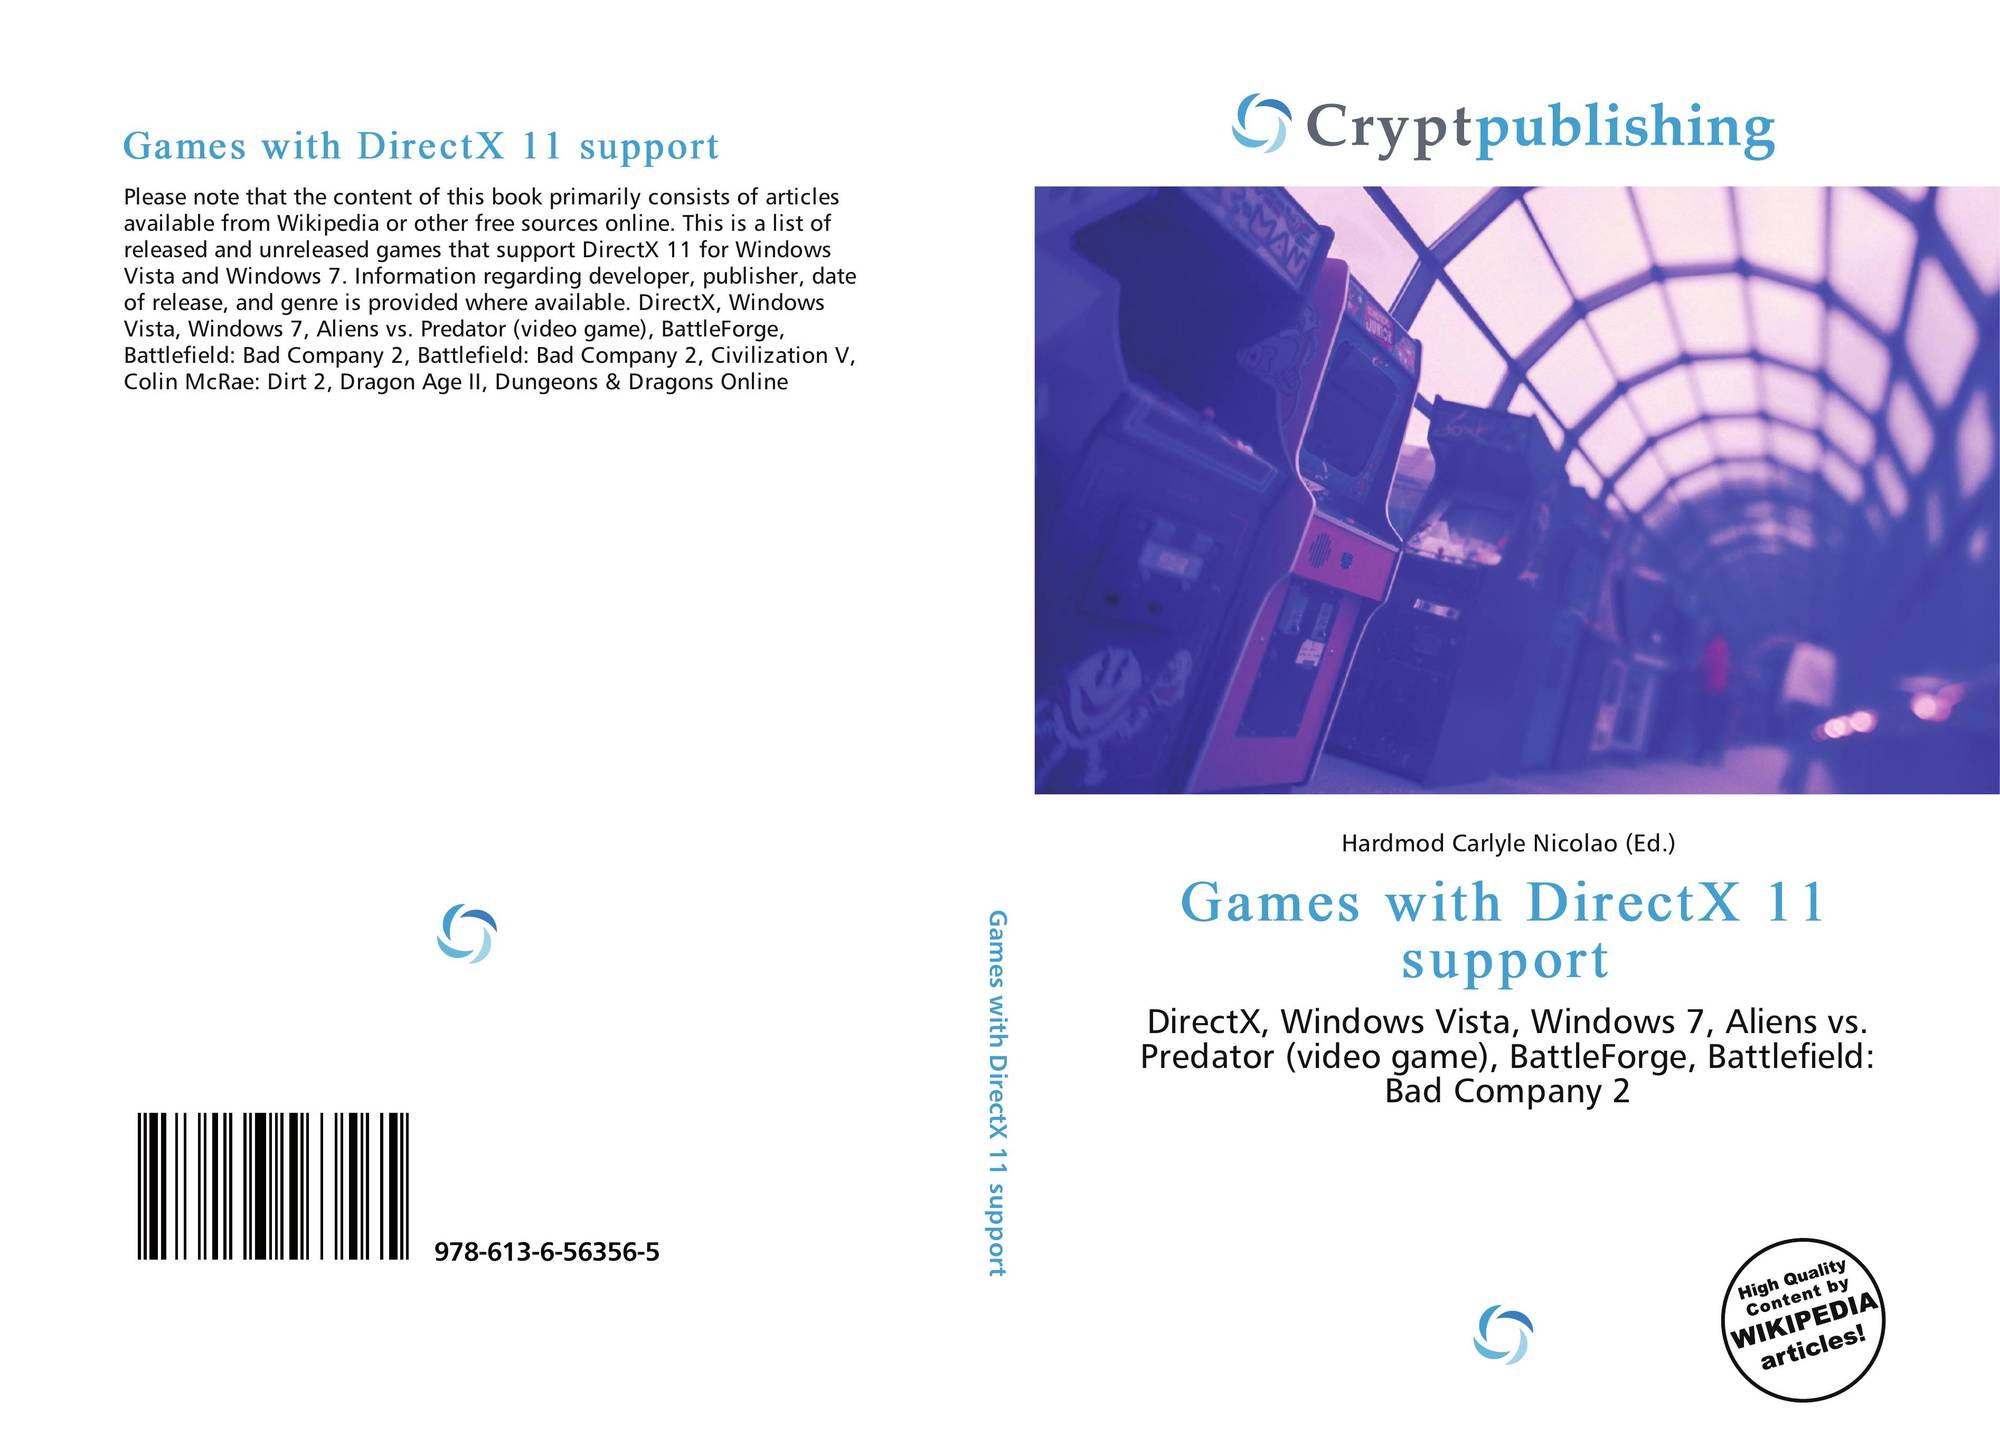 Games with DirectX 11 support, 978-613-6-56356-5, 6136563568